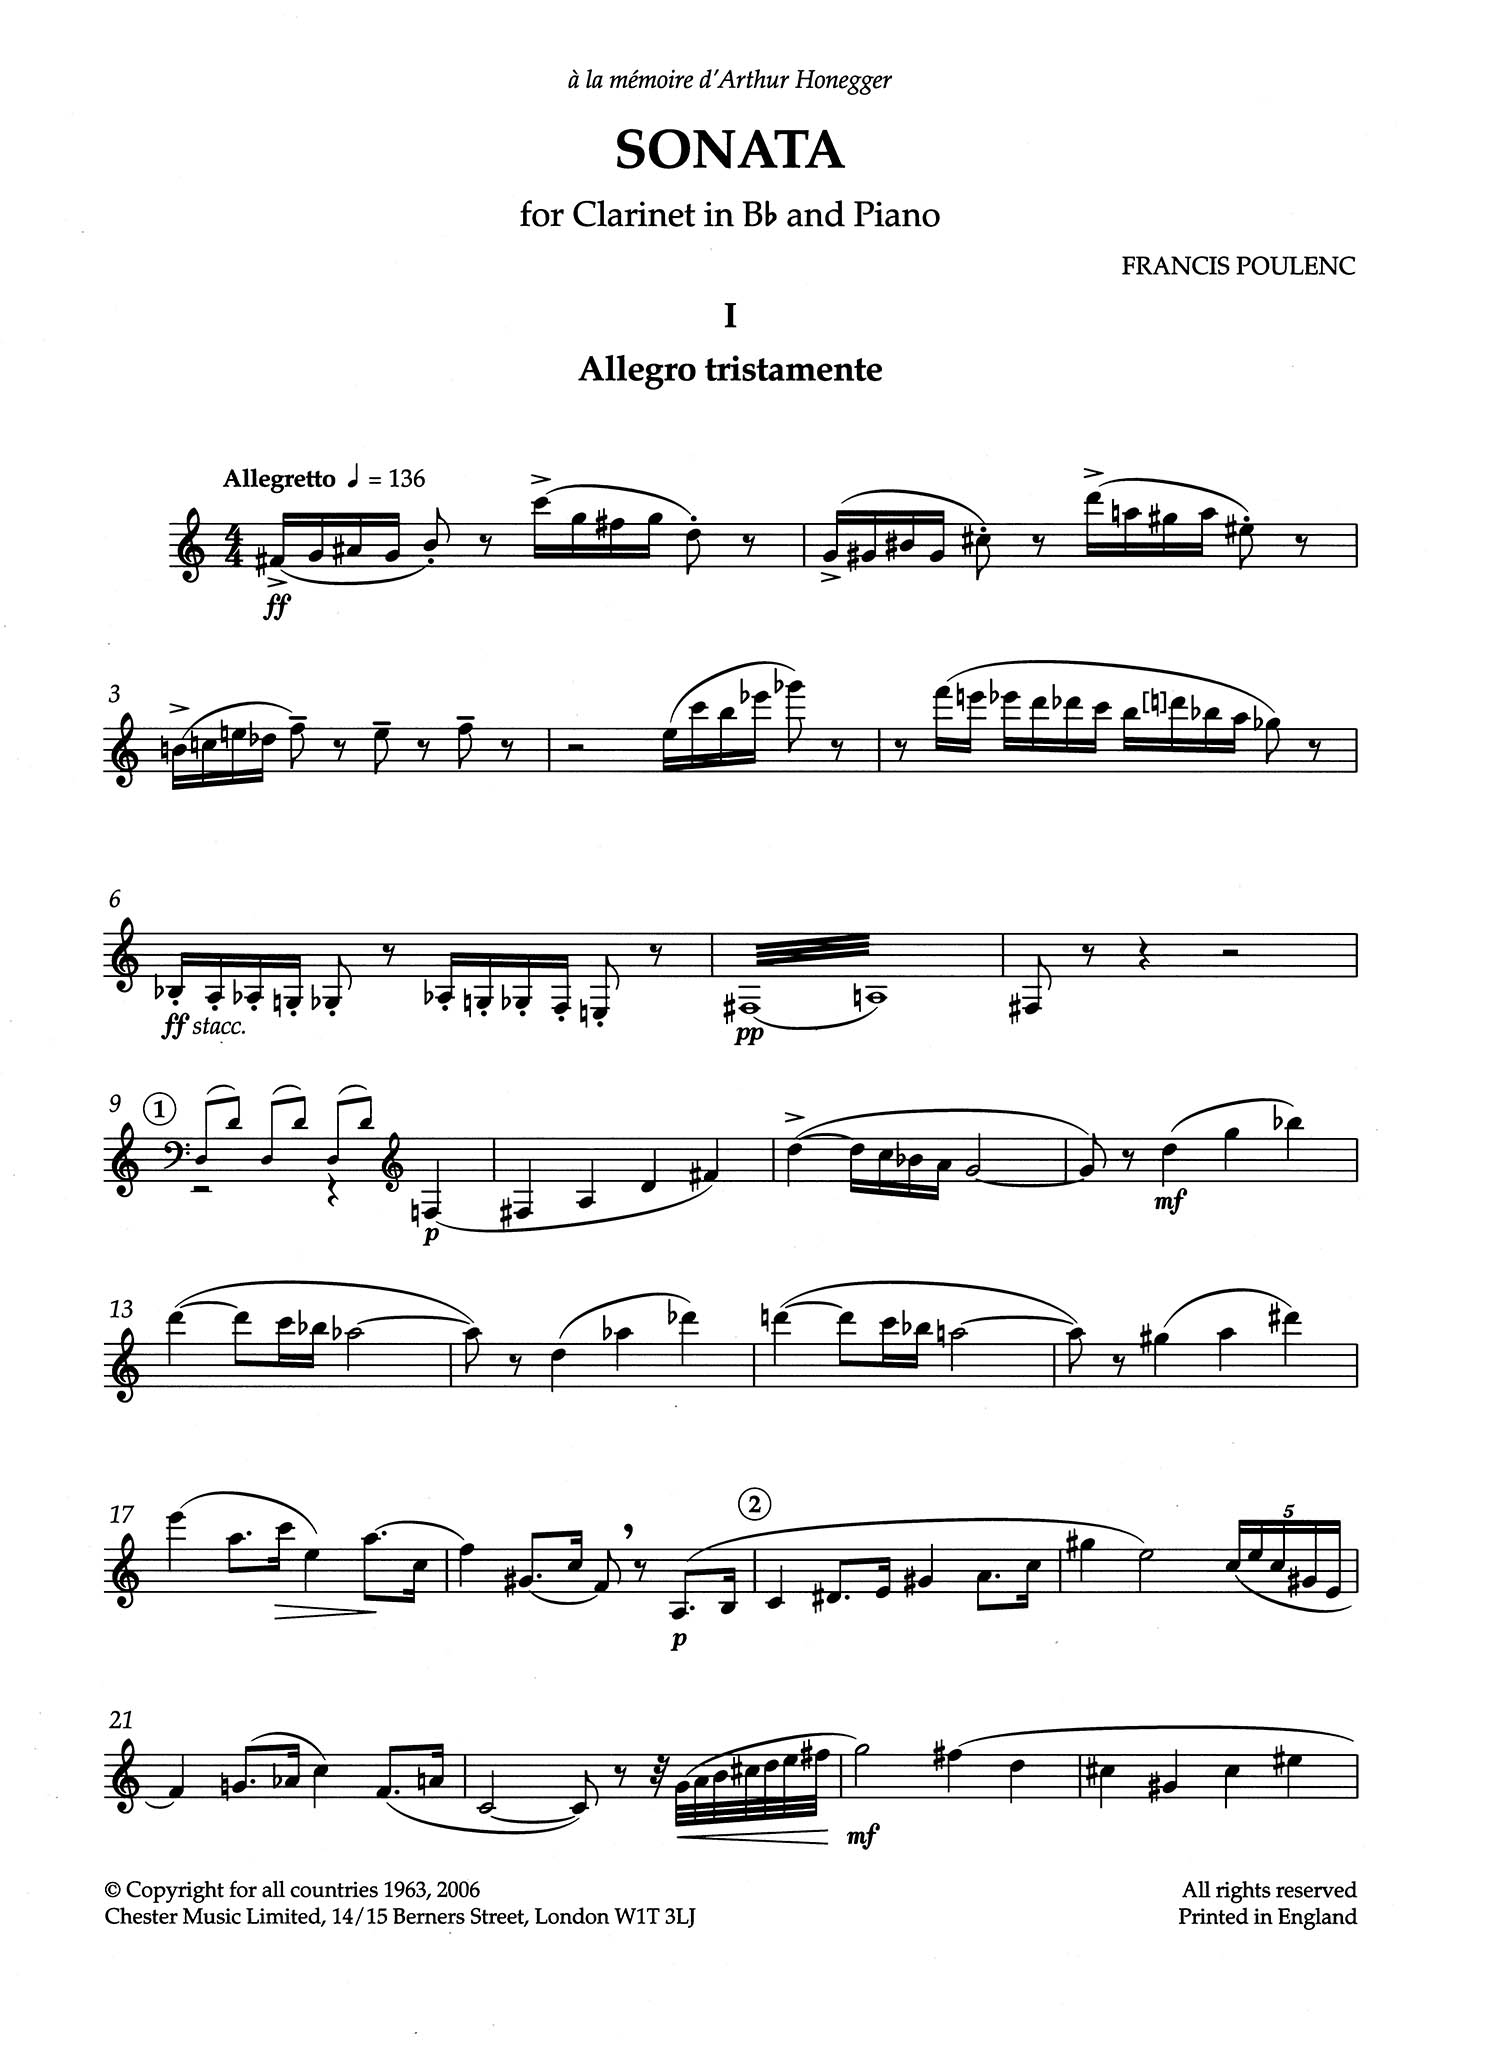 Sonata for Clarinet & Piano Clarinet part